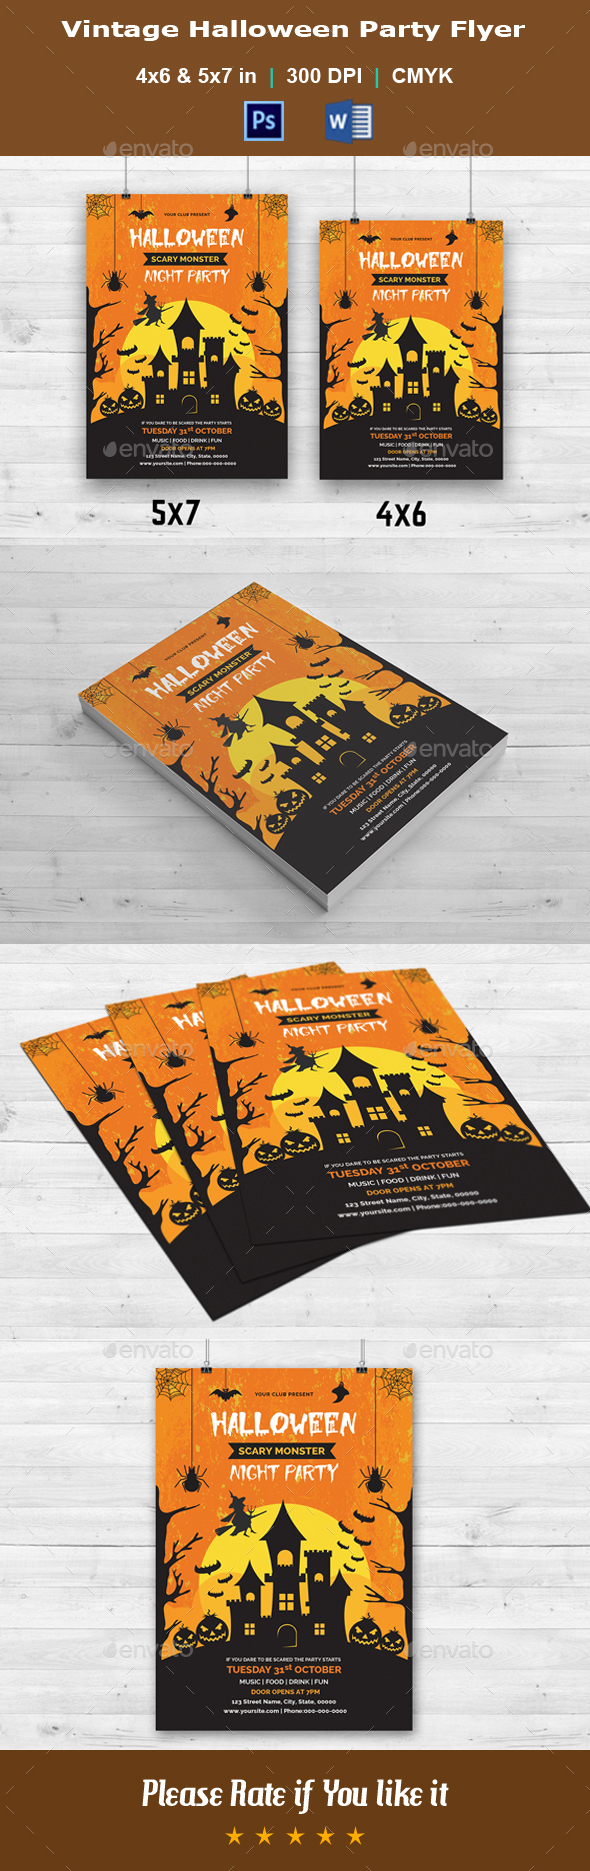 Halloween Party Flyer V13 - Events Flyers